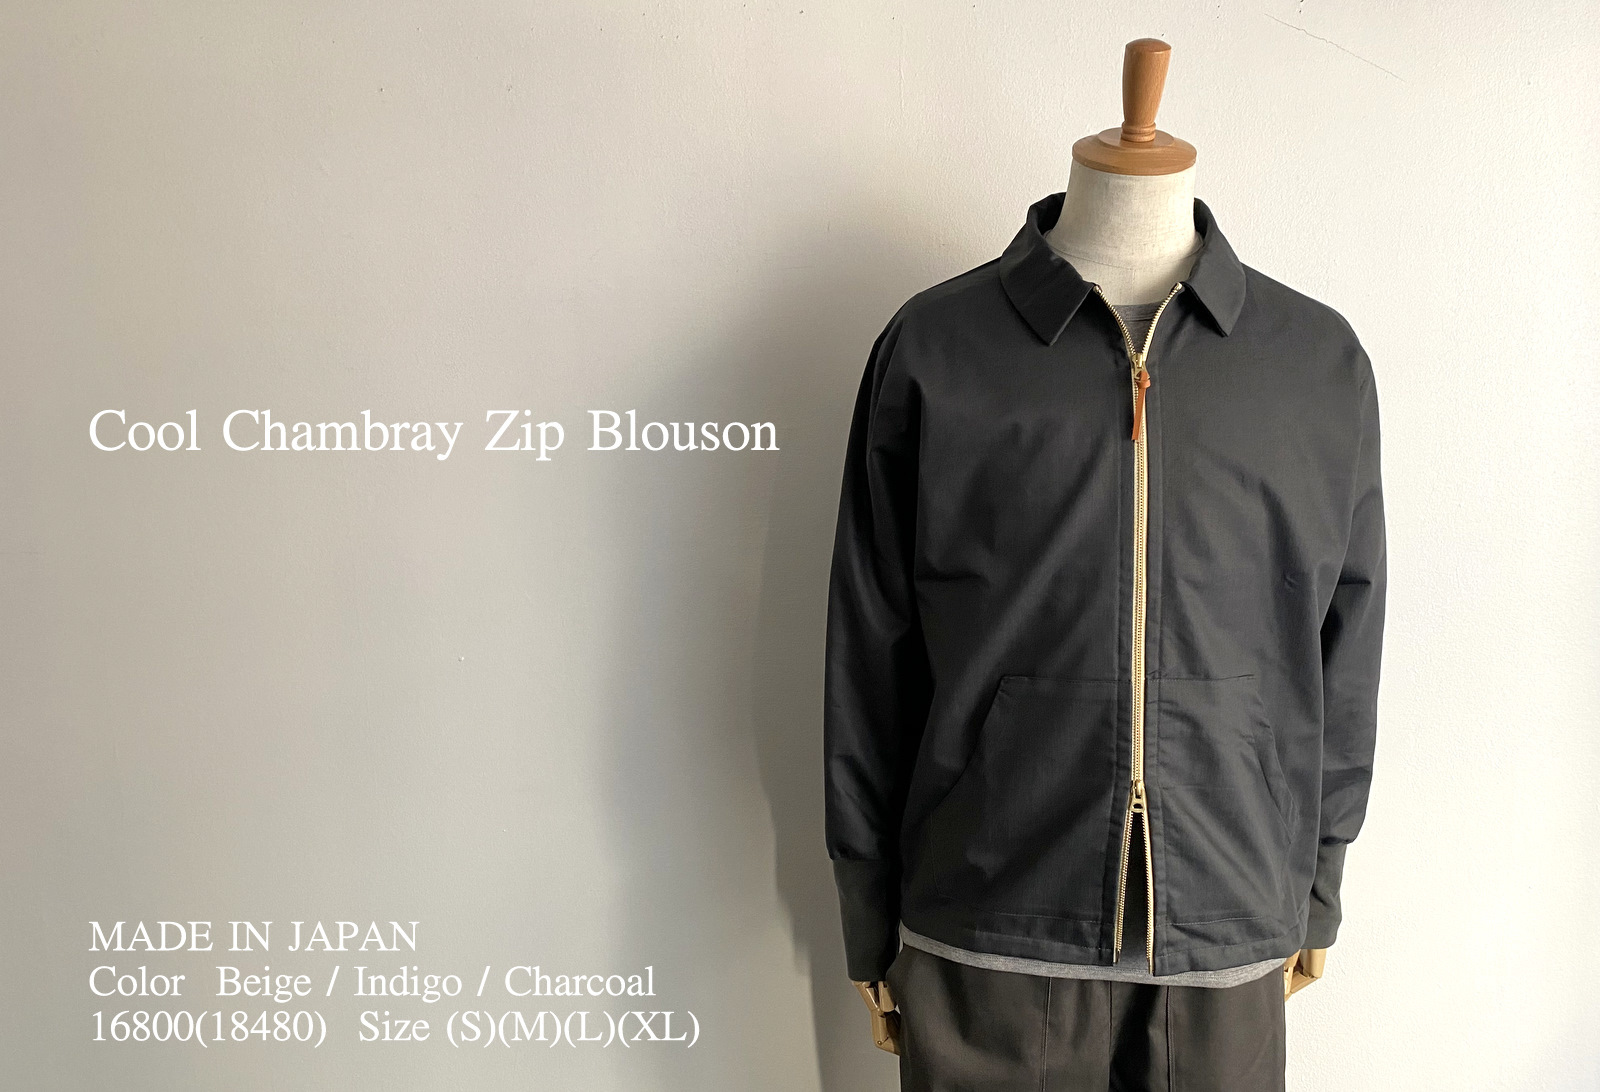 Cool Chambray Zip Blouson_c0379477_22202007.jpg